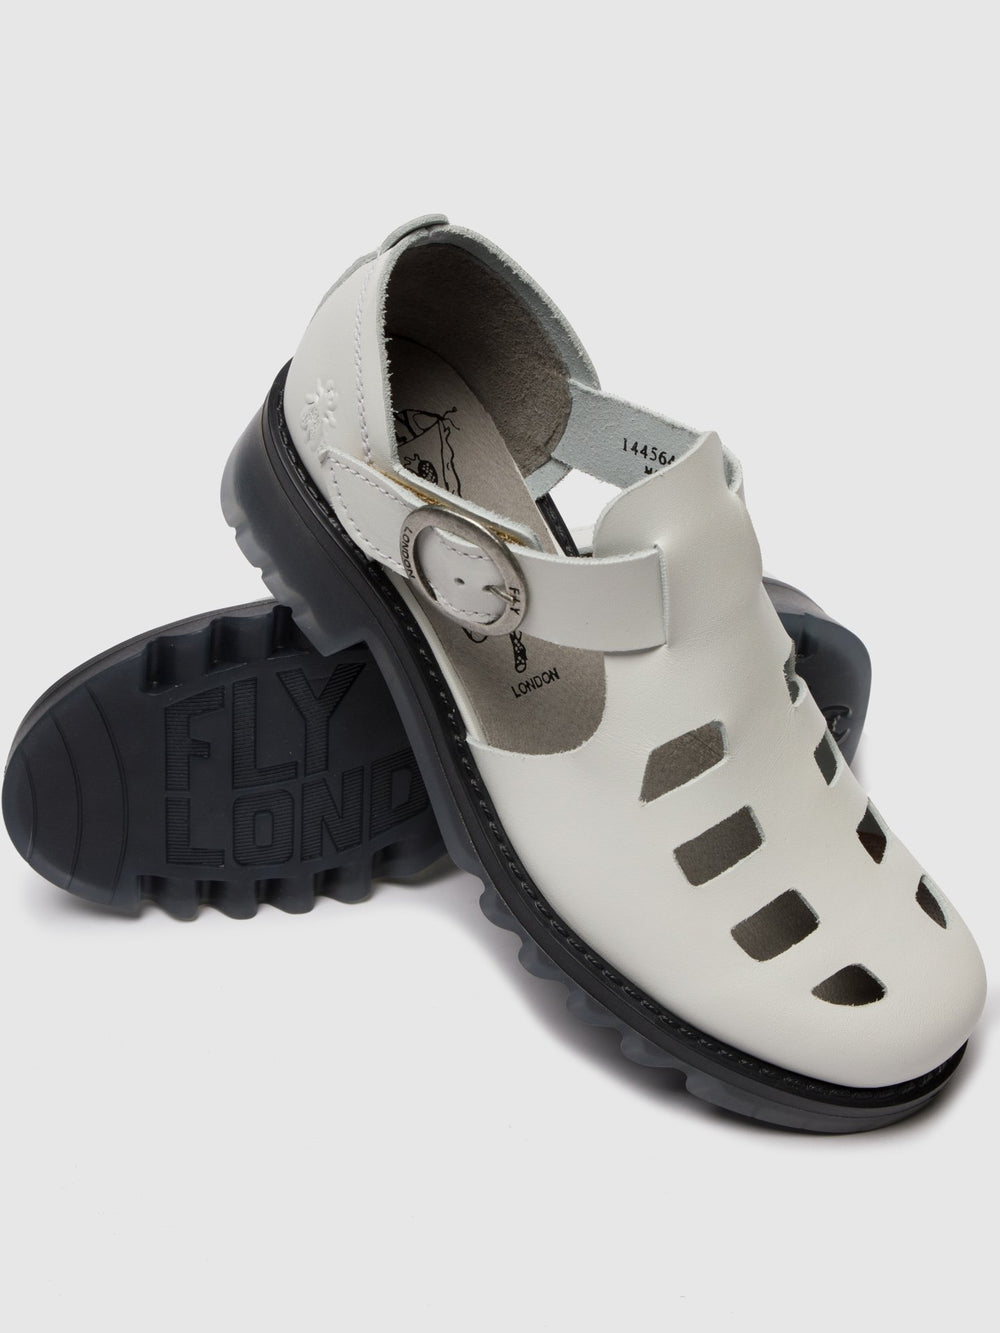 Buckle Shoes ROLI564FLY OFFWHITE